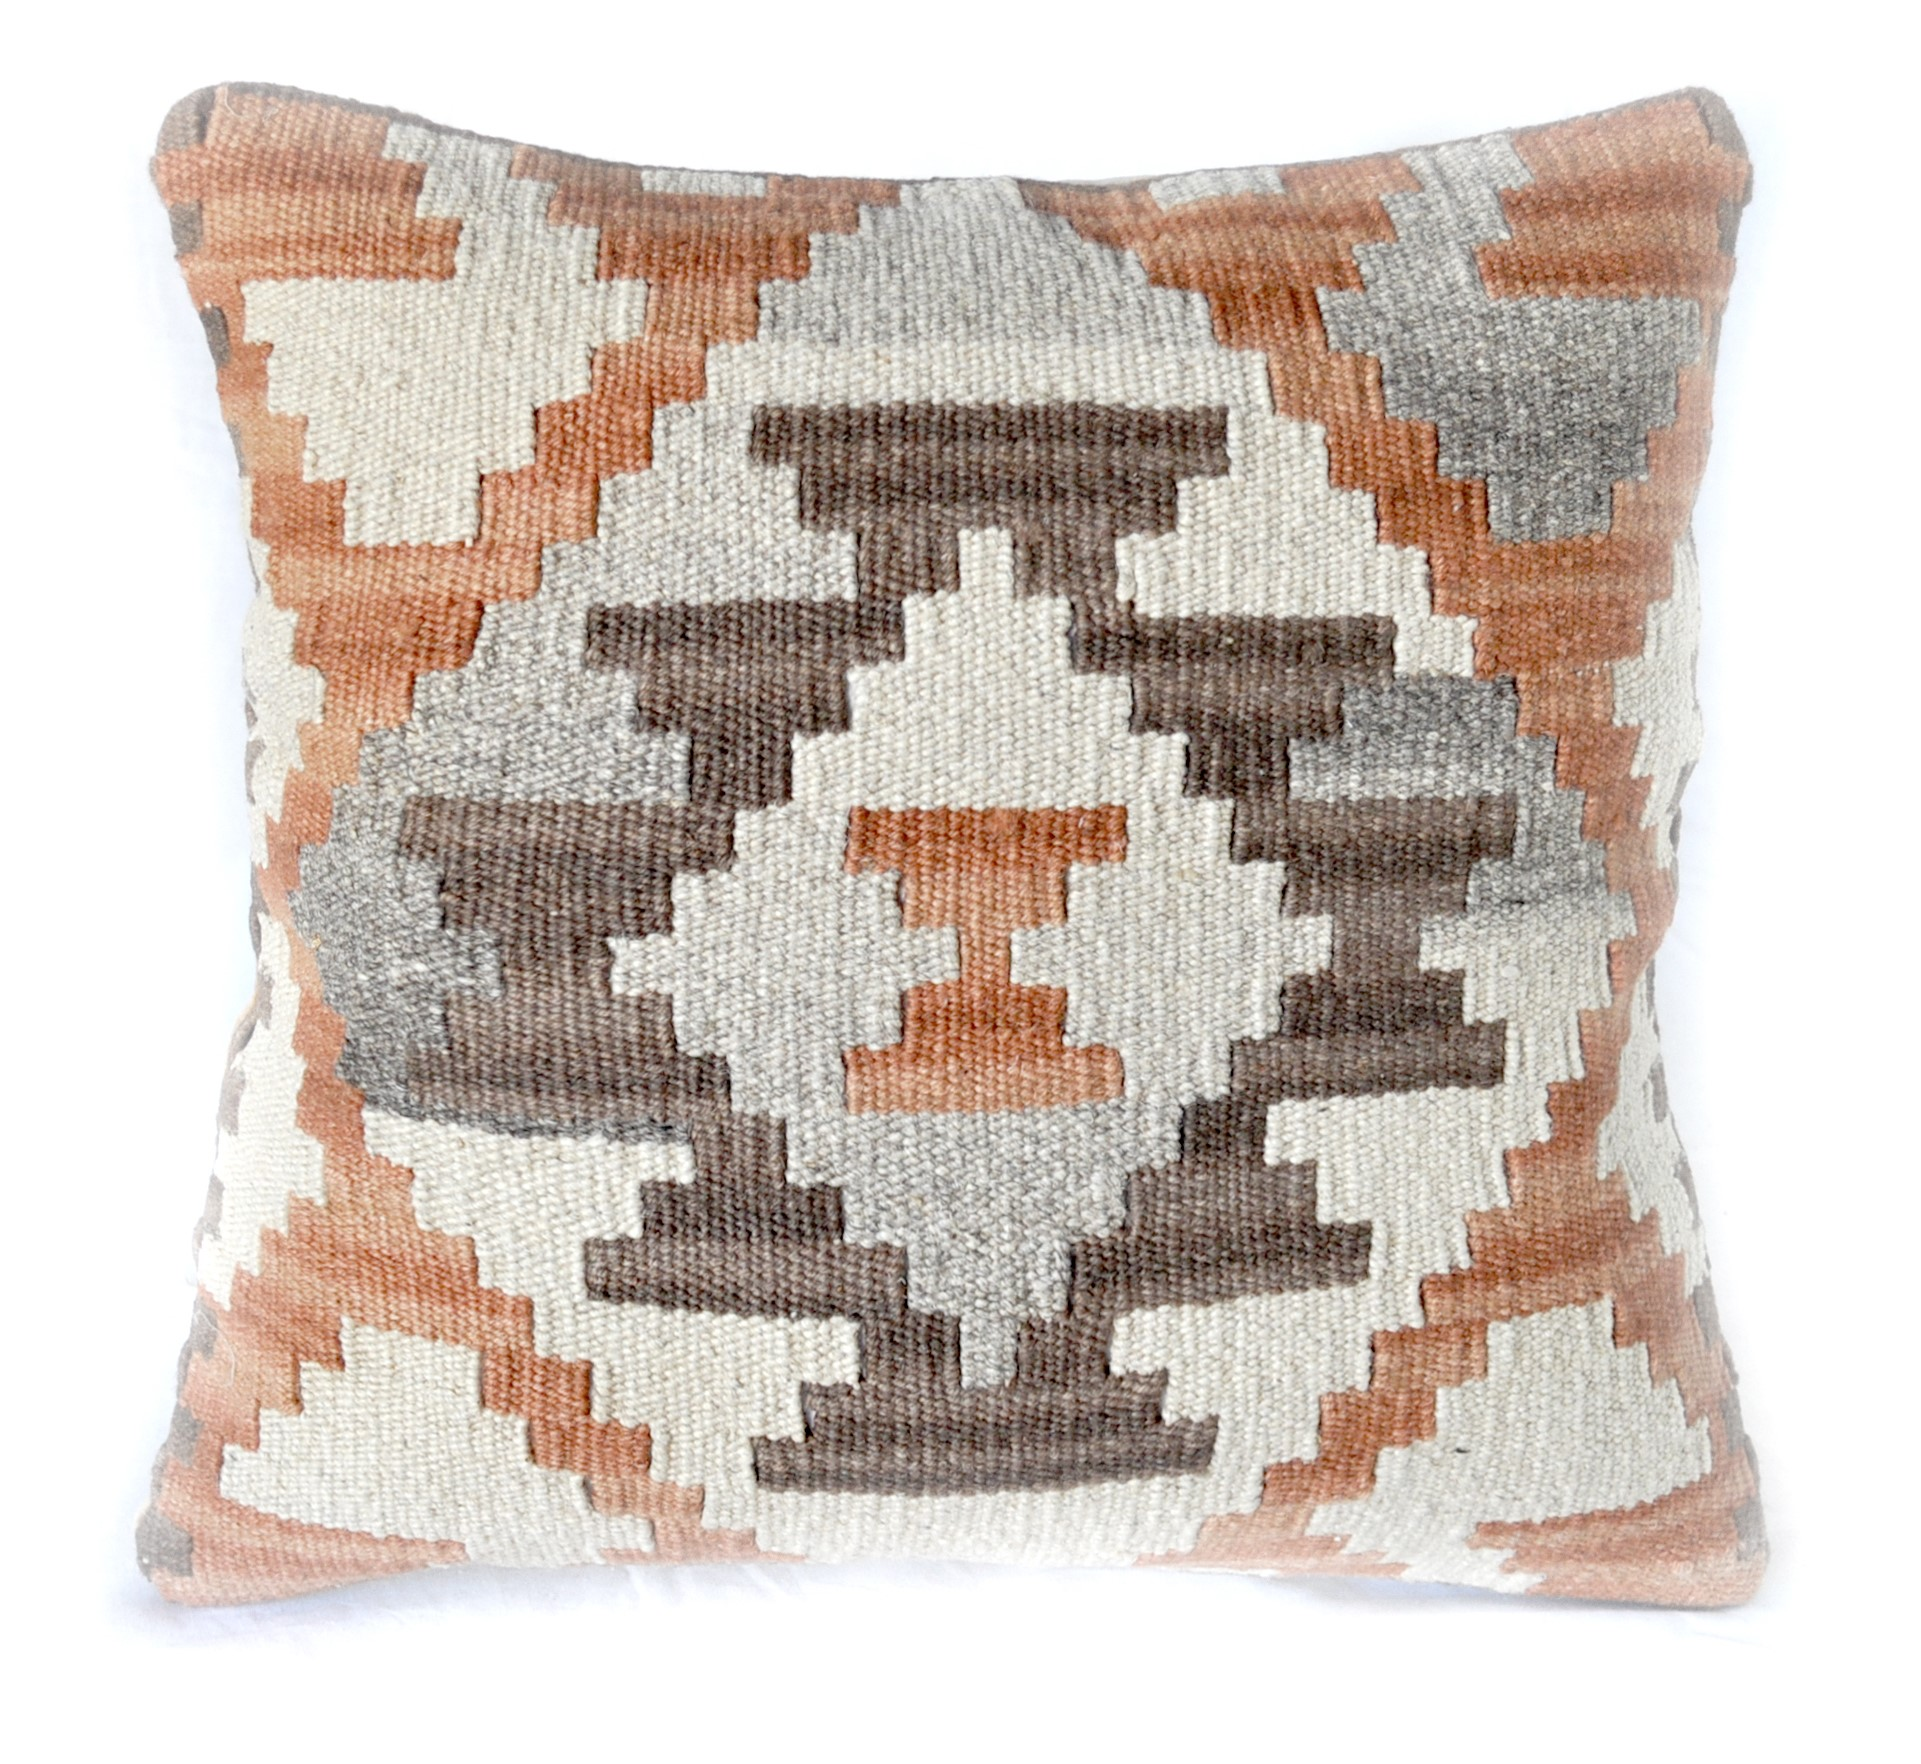 18×18 Hand-woven Wool Kilim Pillow Cover 12980989